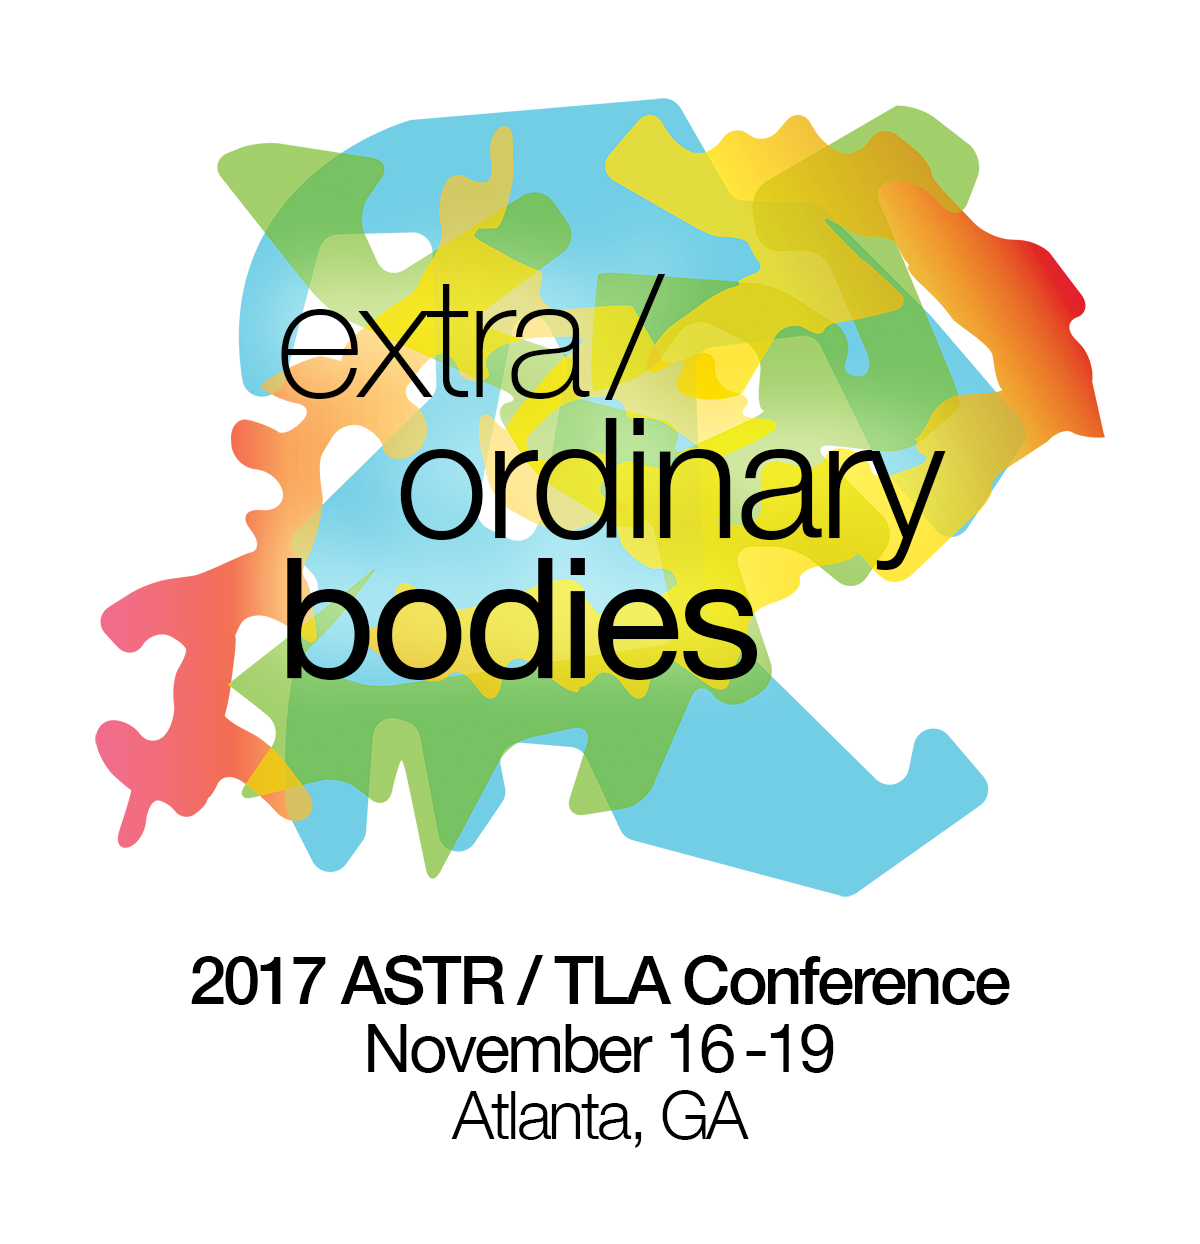 ASTR 2017 Annual Conference November 16-19 in Atlanta, GA